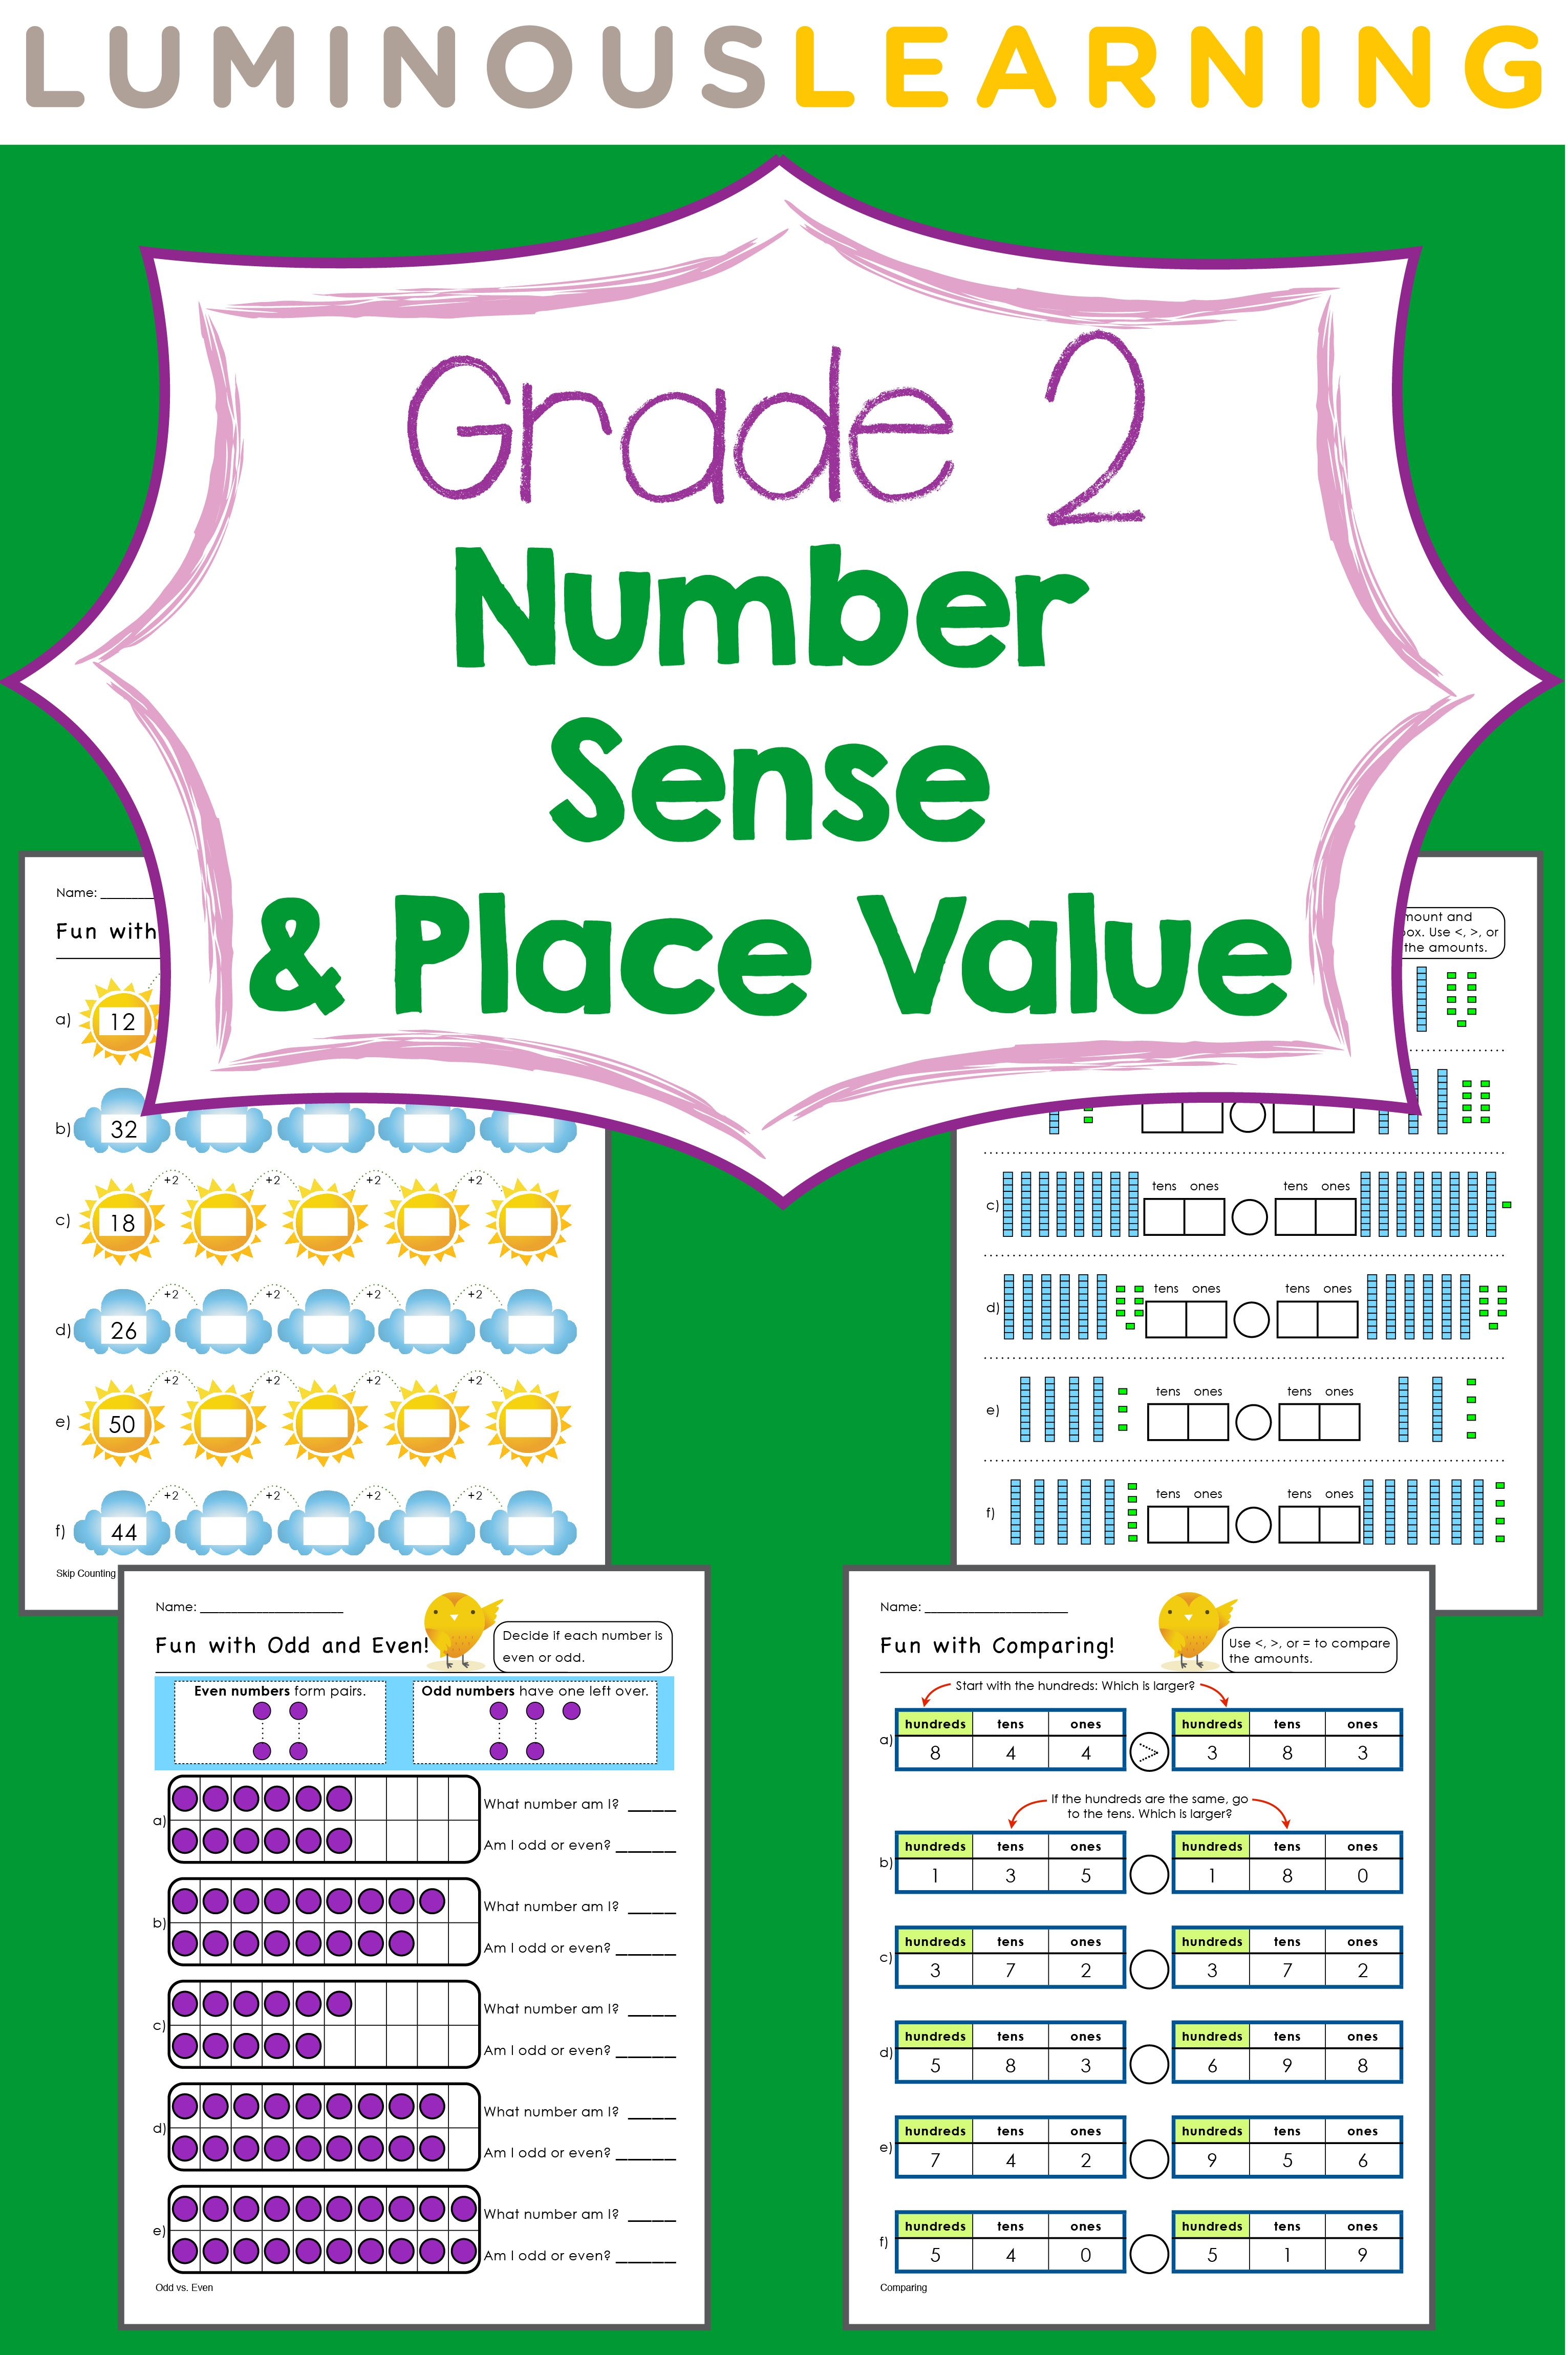 Luminous Learning Grade 2 Number Sense And Place Value